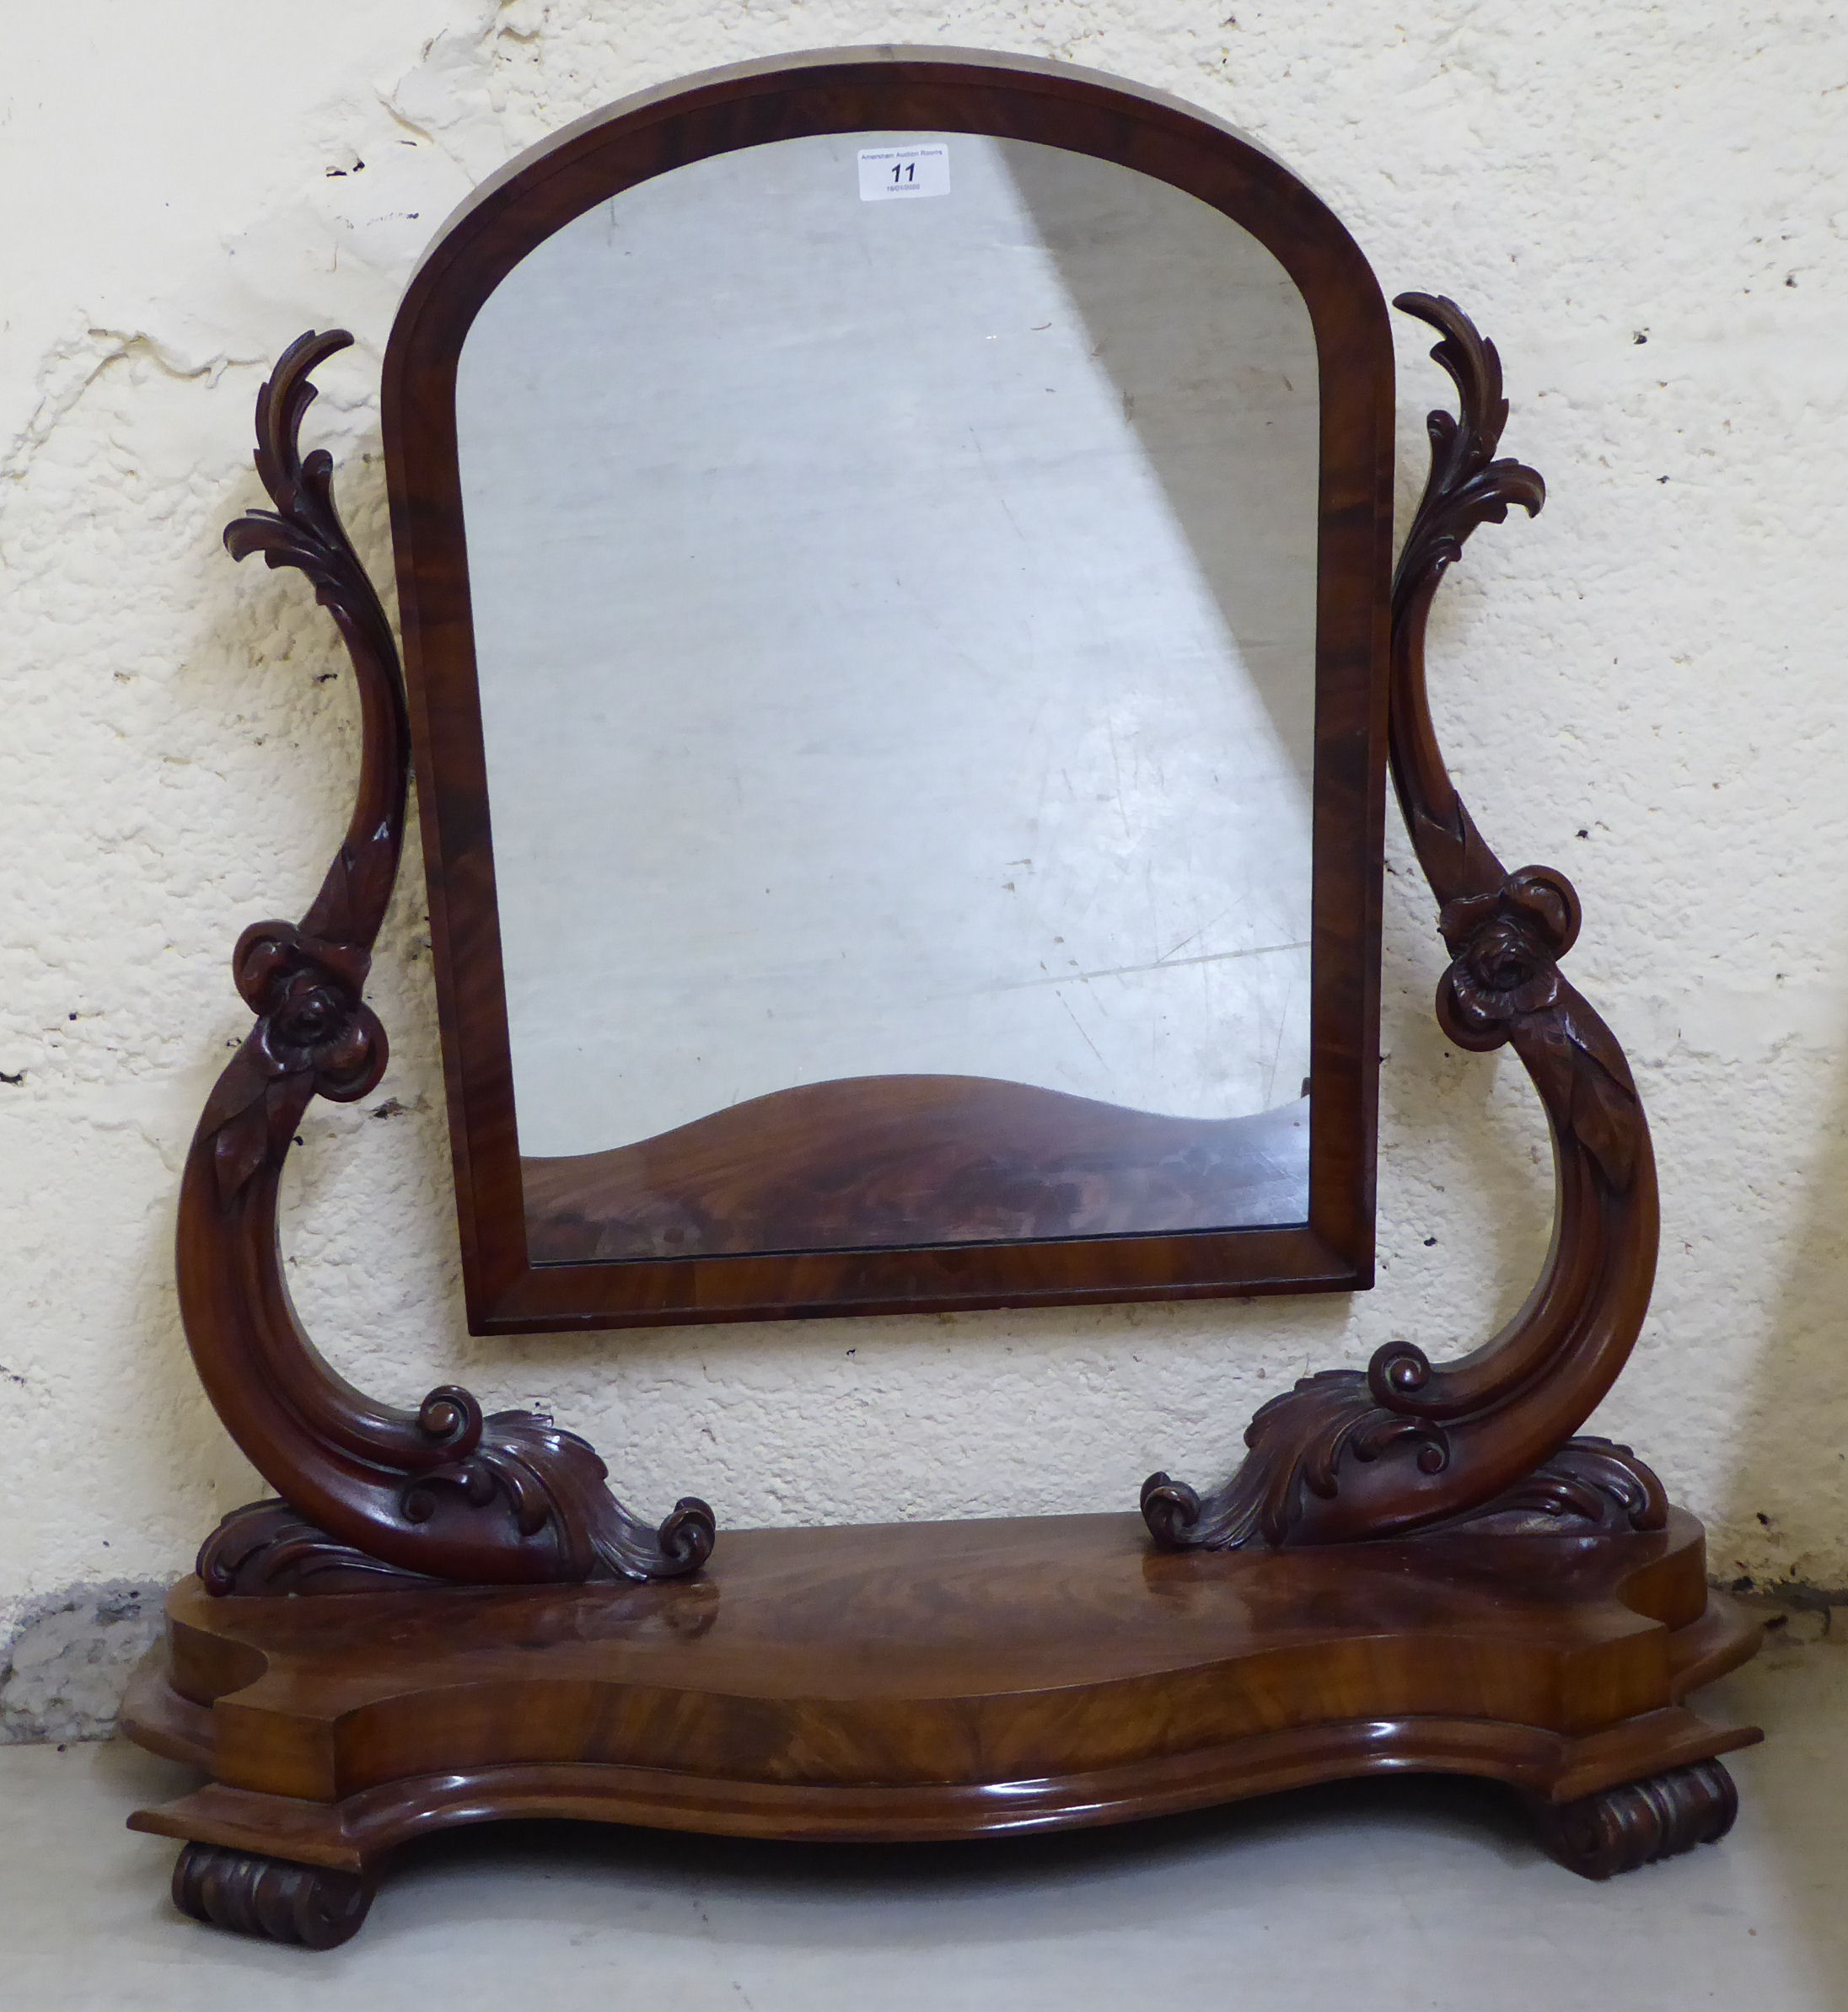 Lot 11 - A late Victorian mahogany dressing table mirror, the arched plate set between foliate moulded,